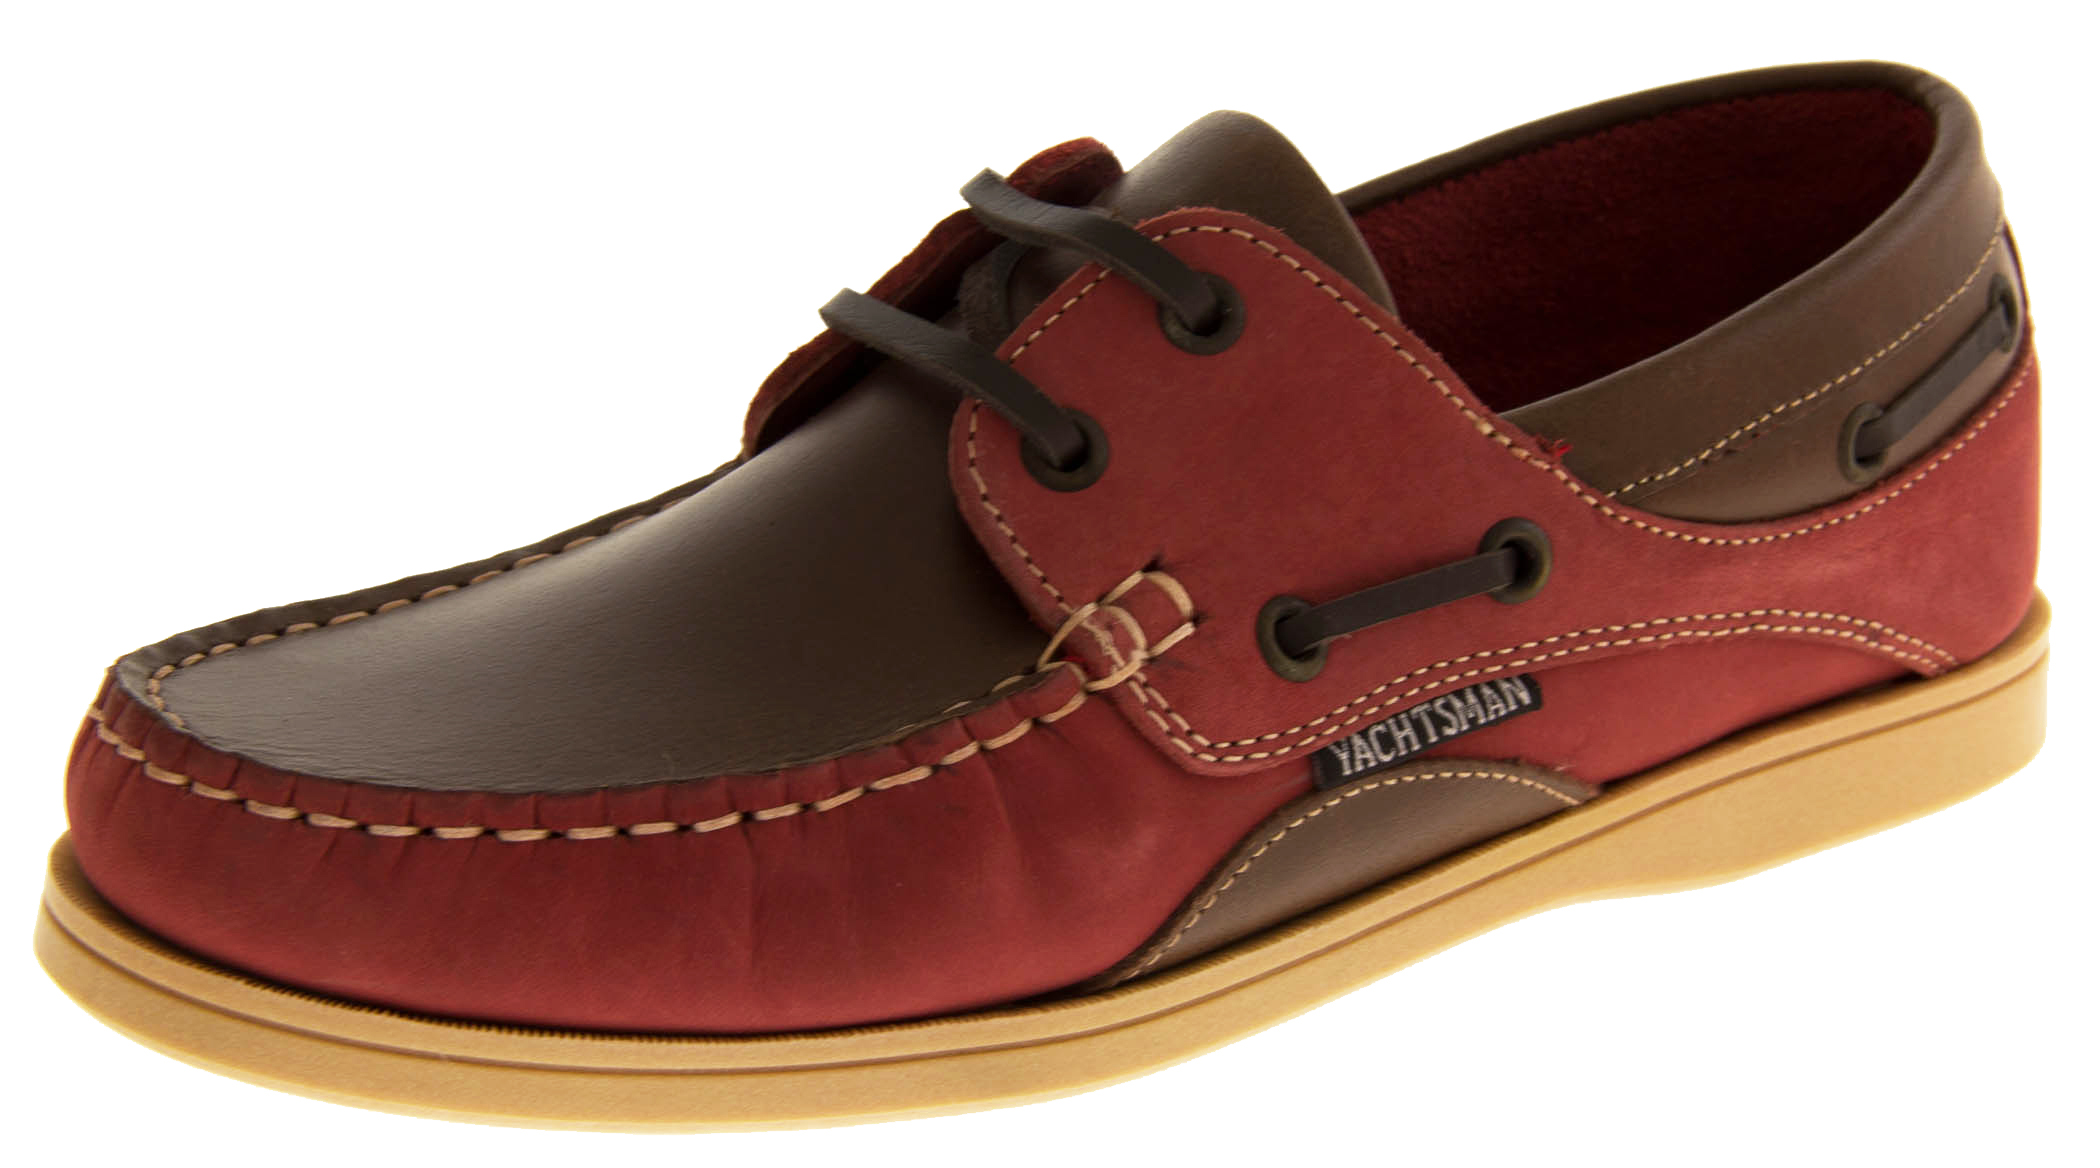 If you are looking for canvas deck shoes, choose from a wide variety of styles, including brands like Crocs, Merona Rhett, Eddie Bauer, Reef, and more. Since no man is an island, consider picking up some women's deck shoes while you are browsing.